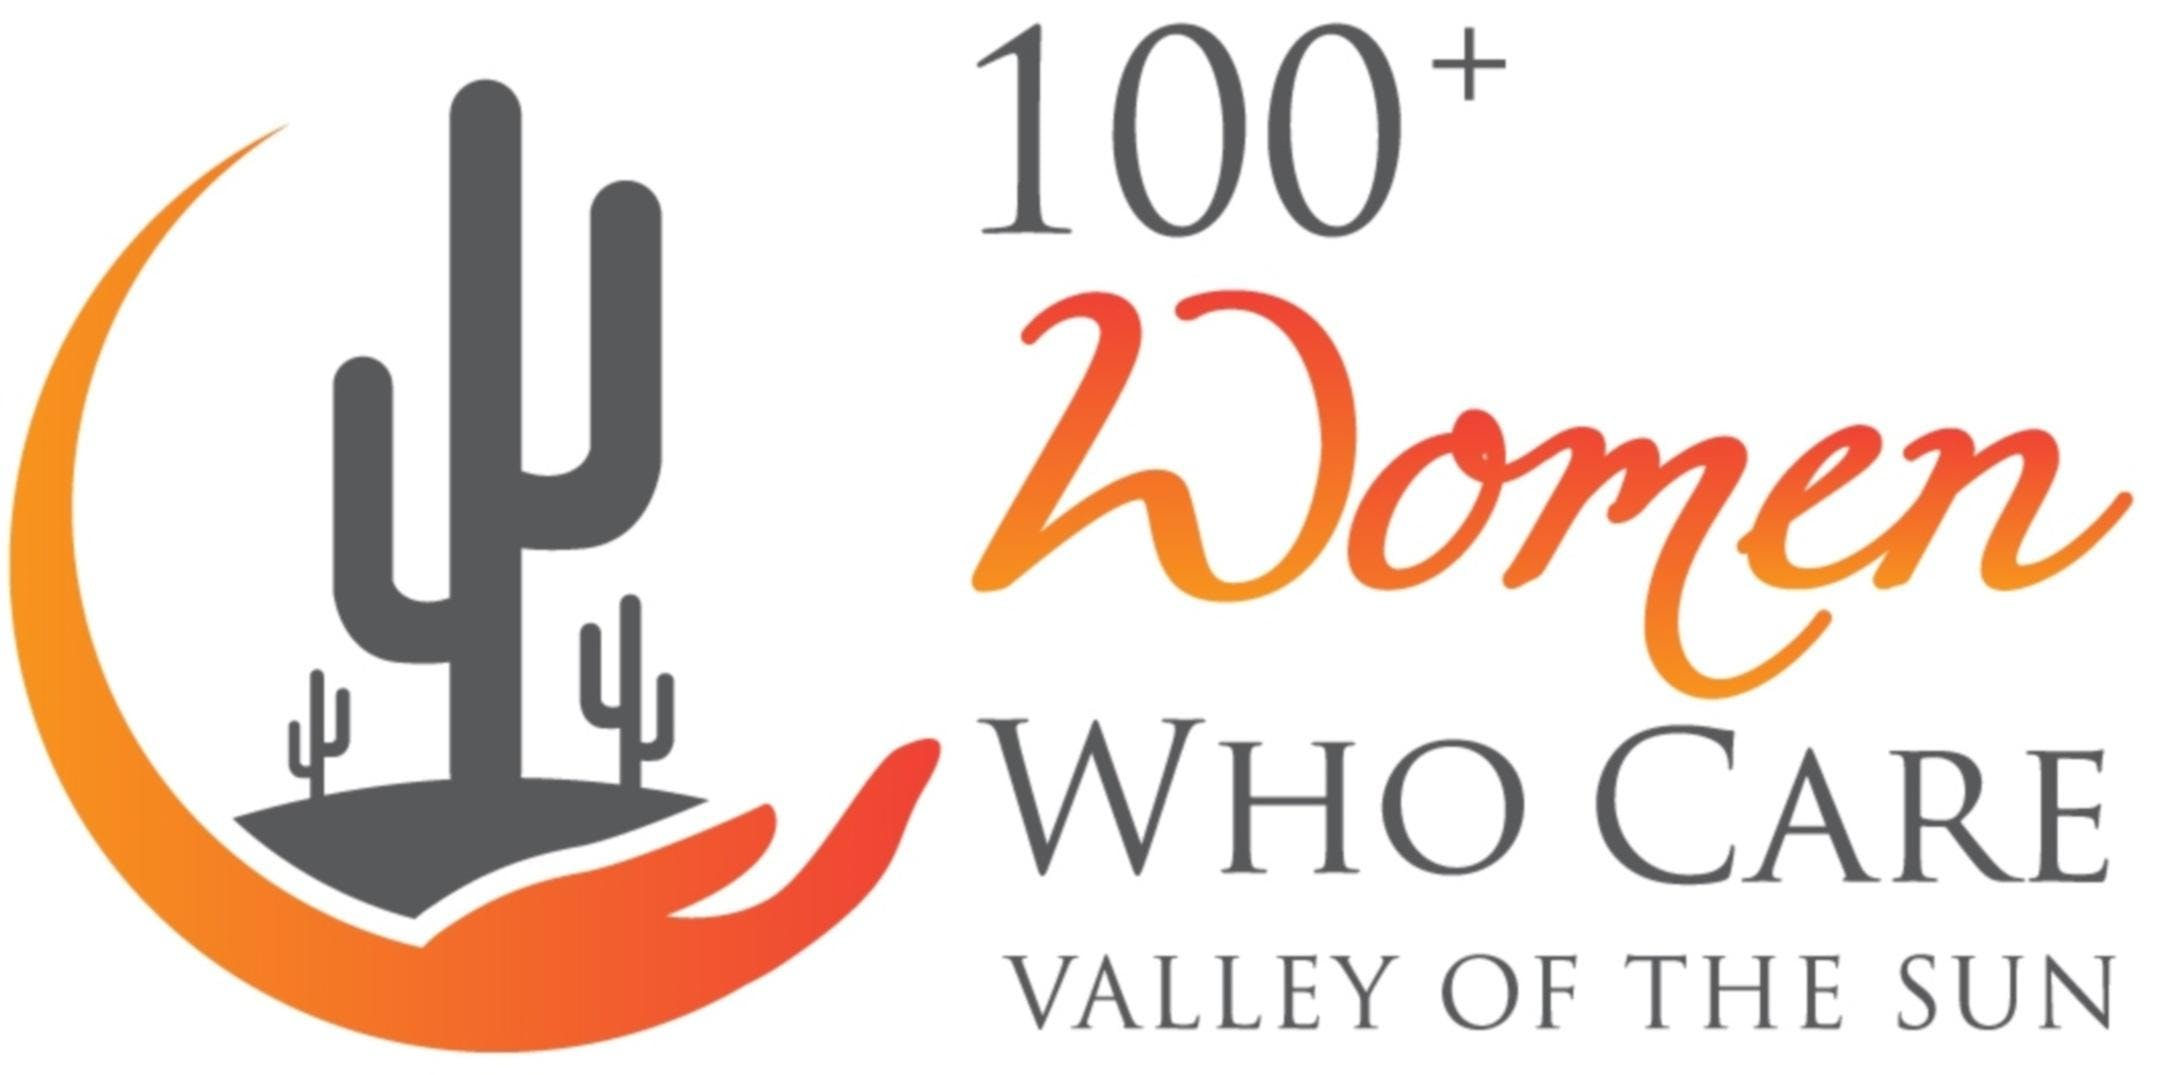 100+ Women Who Care Valley of the Sun - Q3 Giving Circle in Ahwatukee